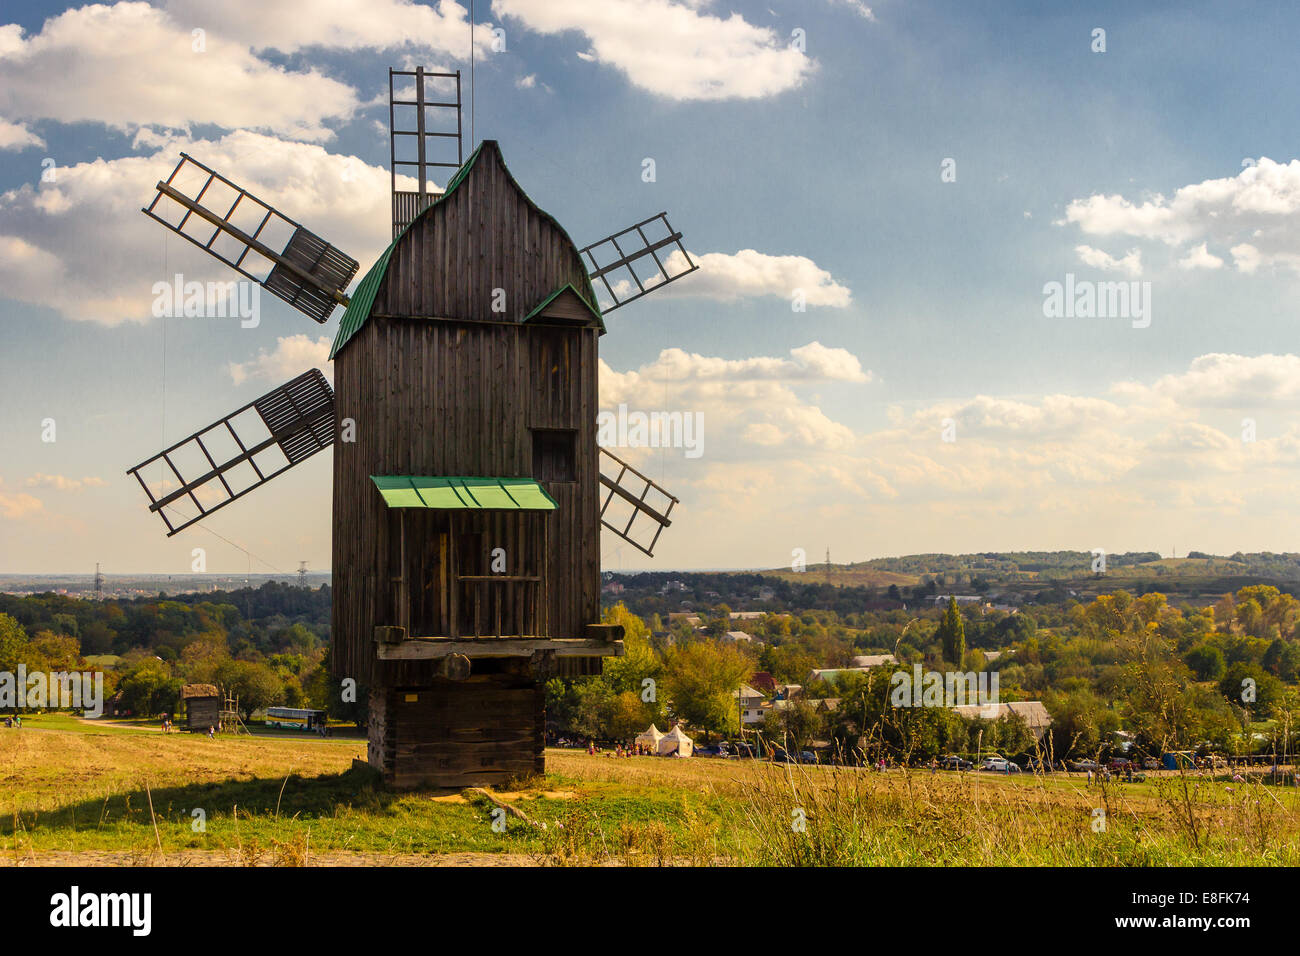 Ukraine, Kyiv, Windmill - Stock Image